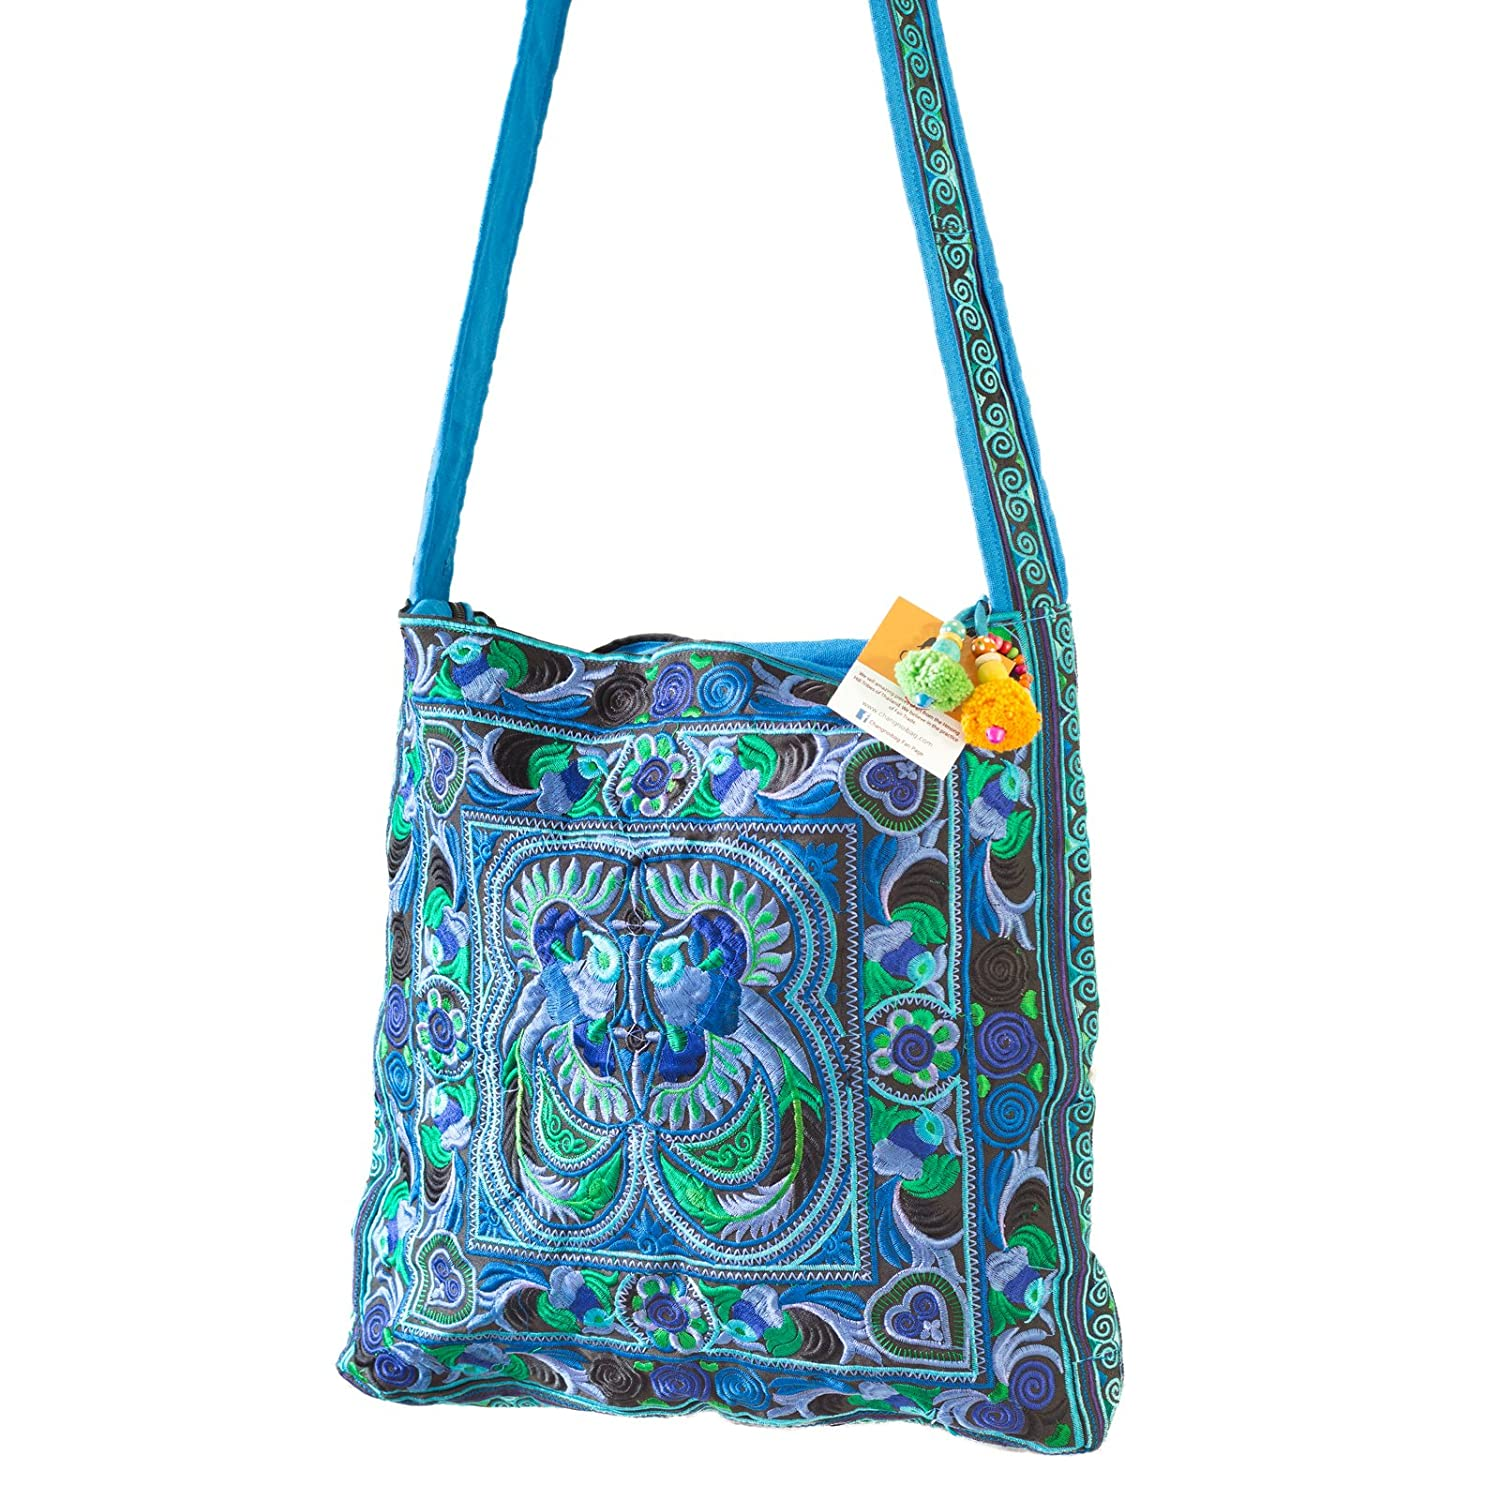 Changnoi Blue Bird Hmong Tote Hill Tribe Crossbody Bag Square Large Embroidered Strap Thai Fair Trade